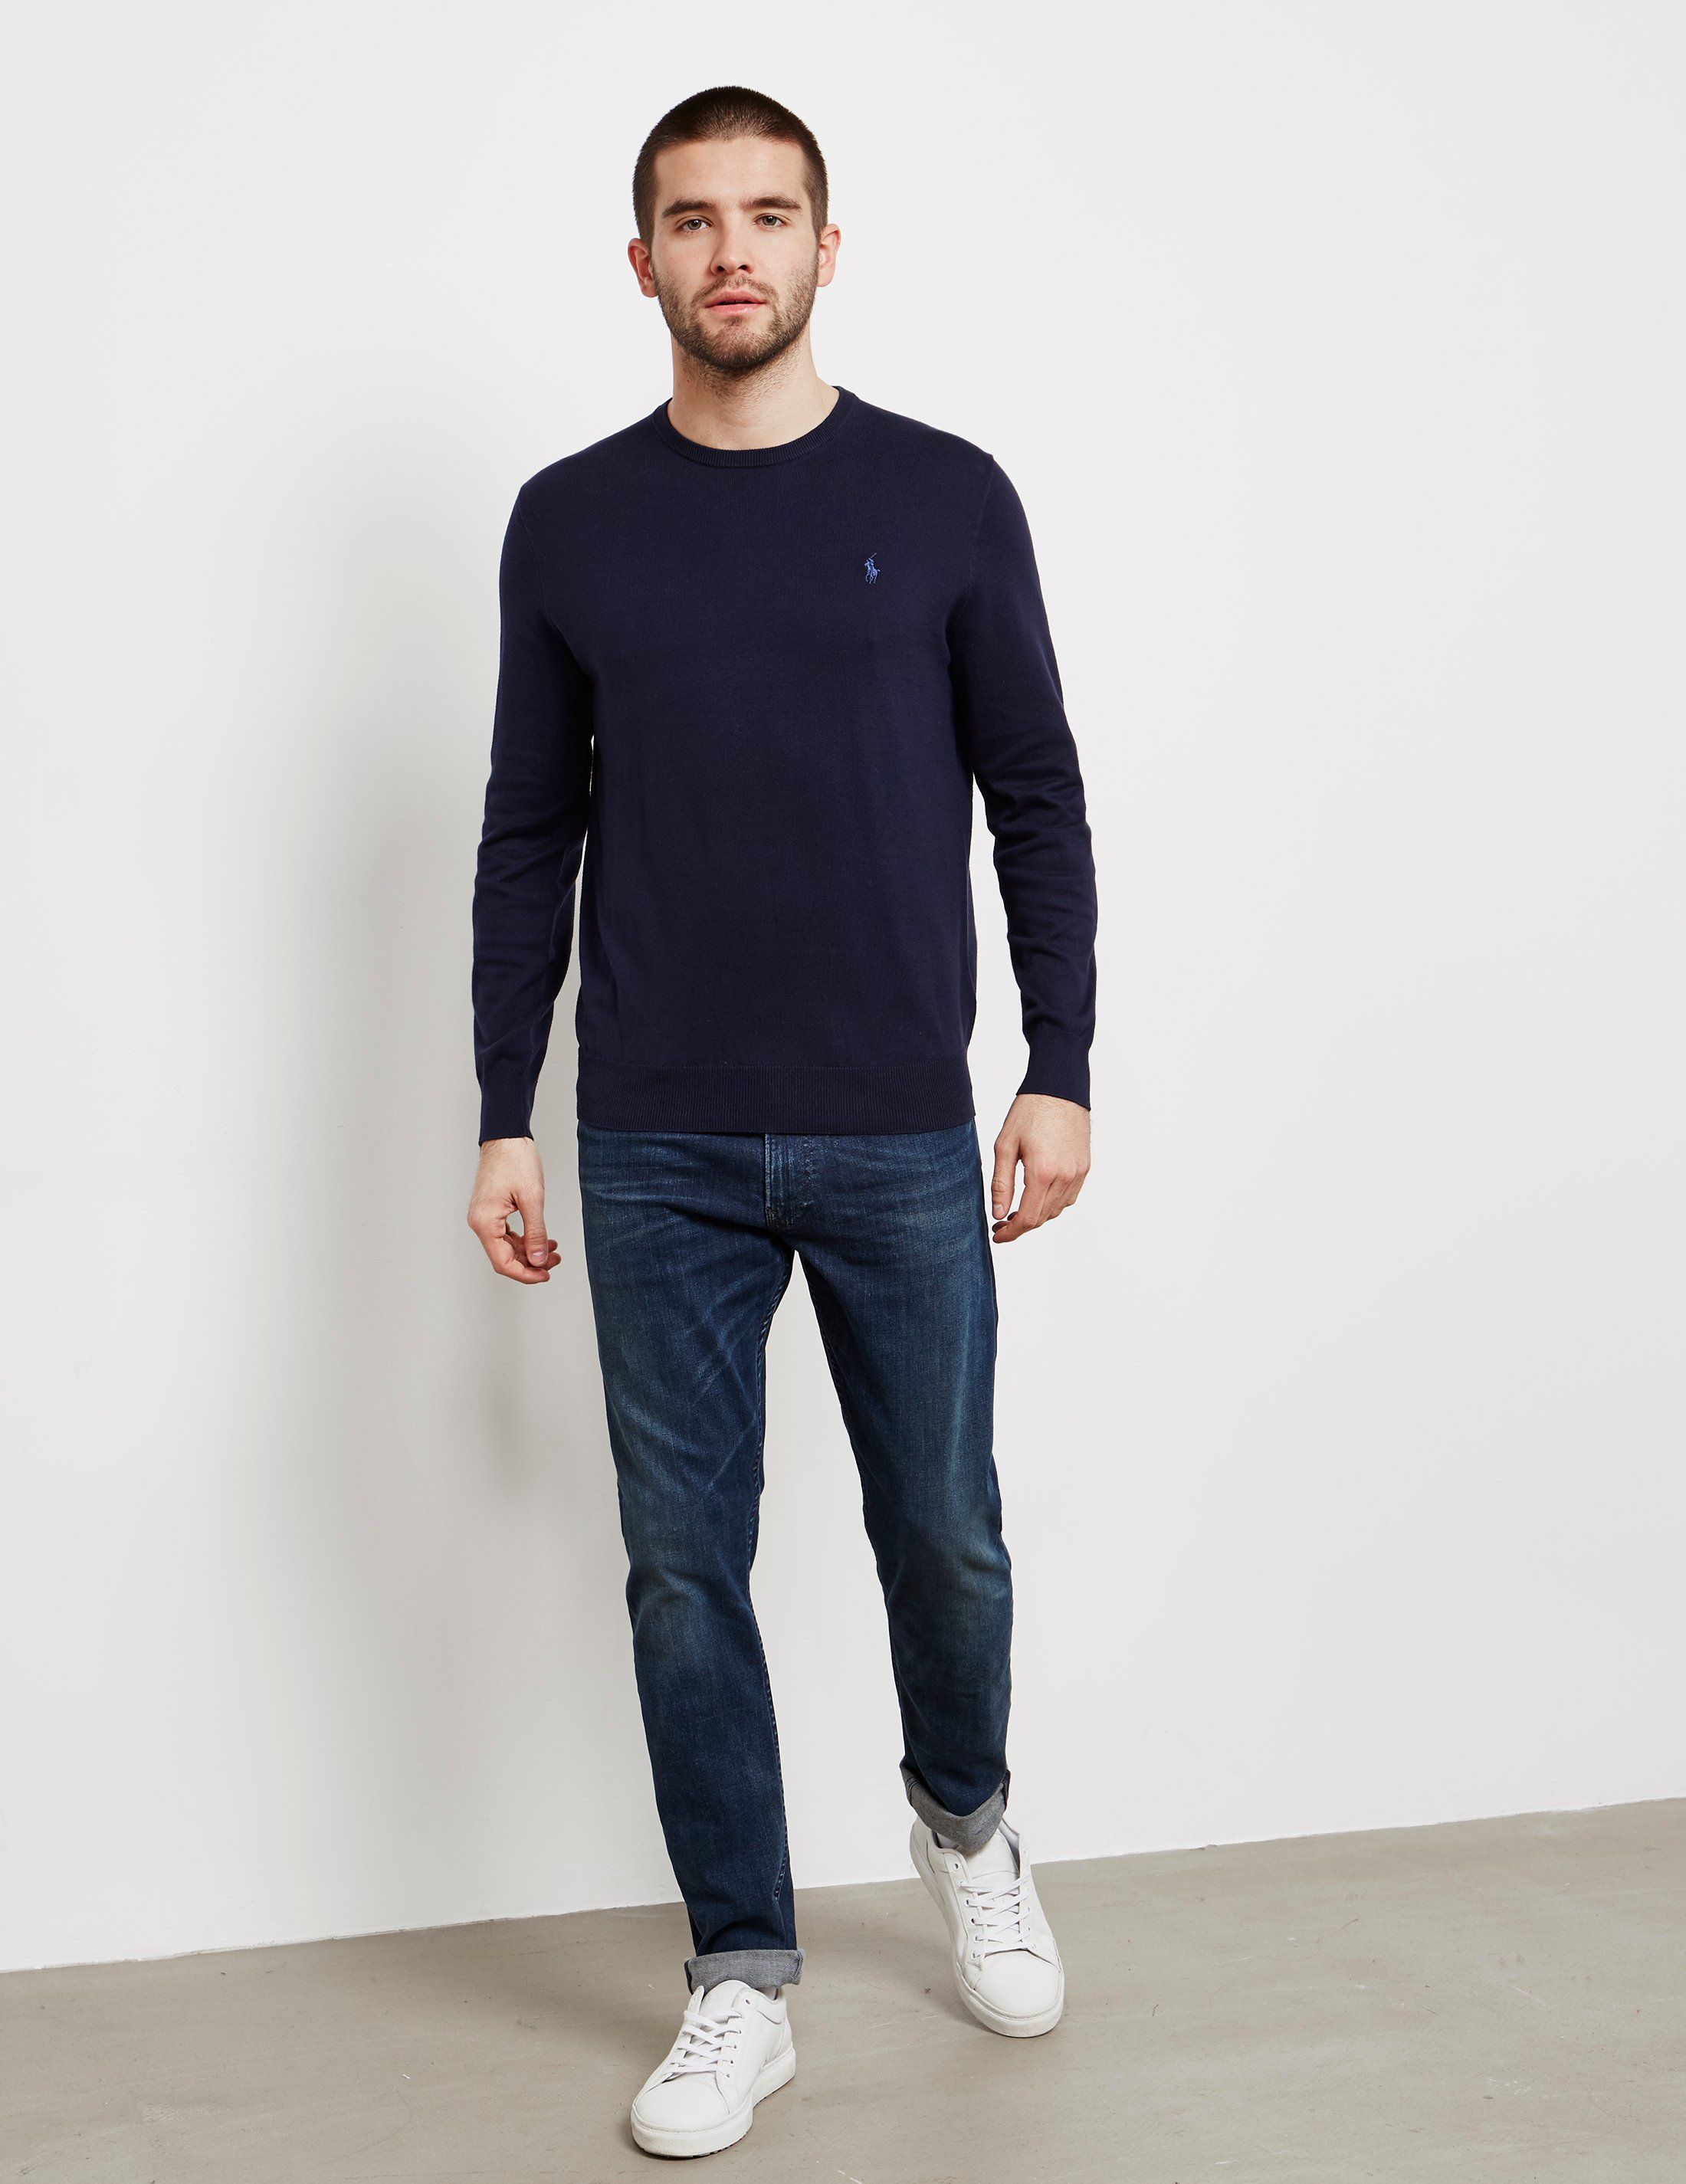 Polo Ralph Lauren Pima Crew Knit Jumper - Online Exclusive